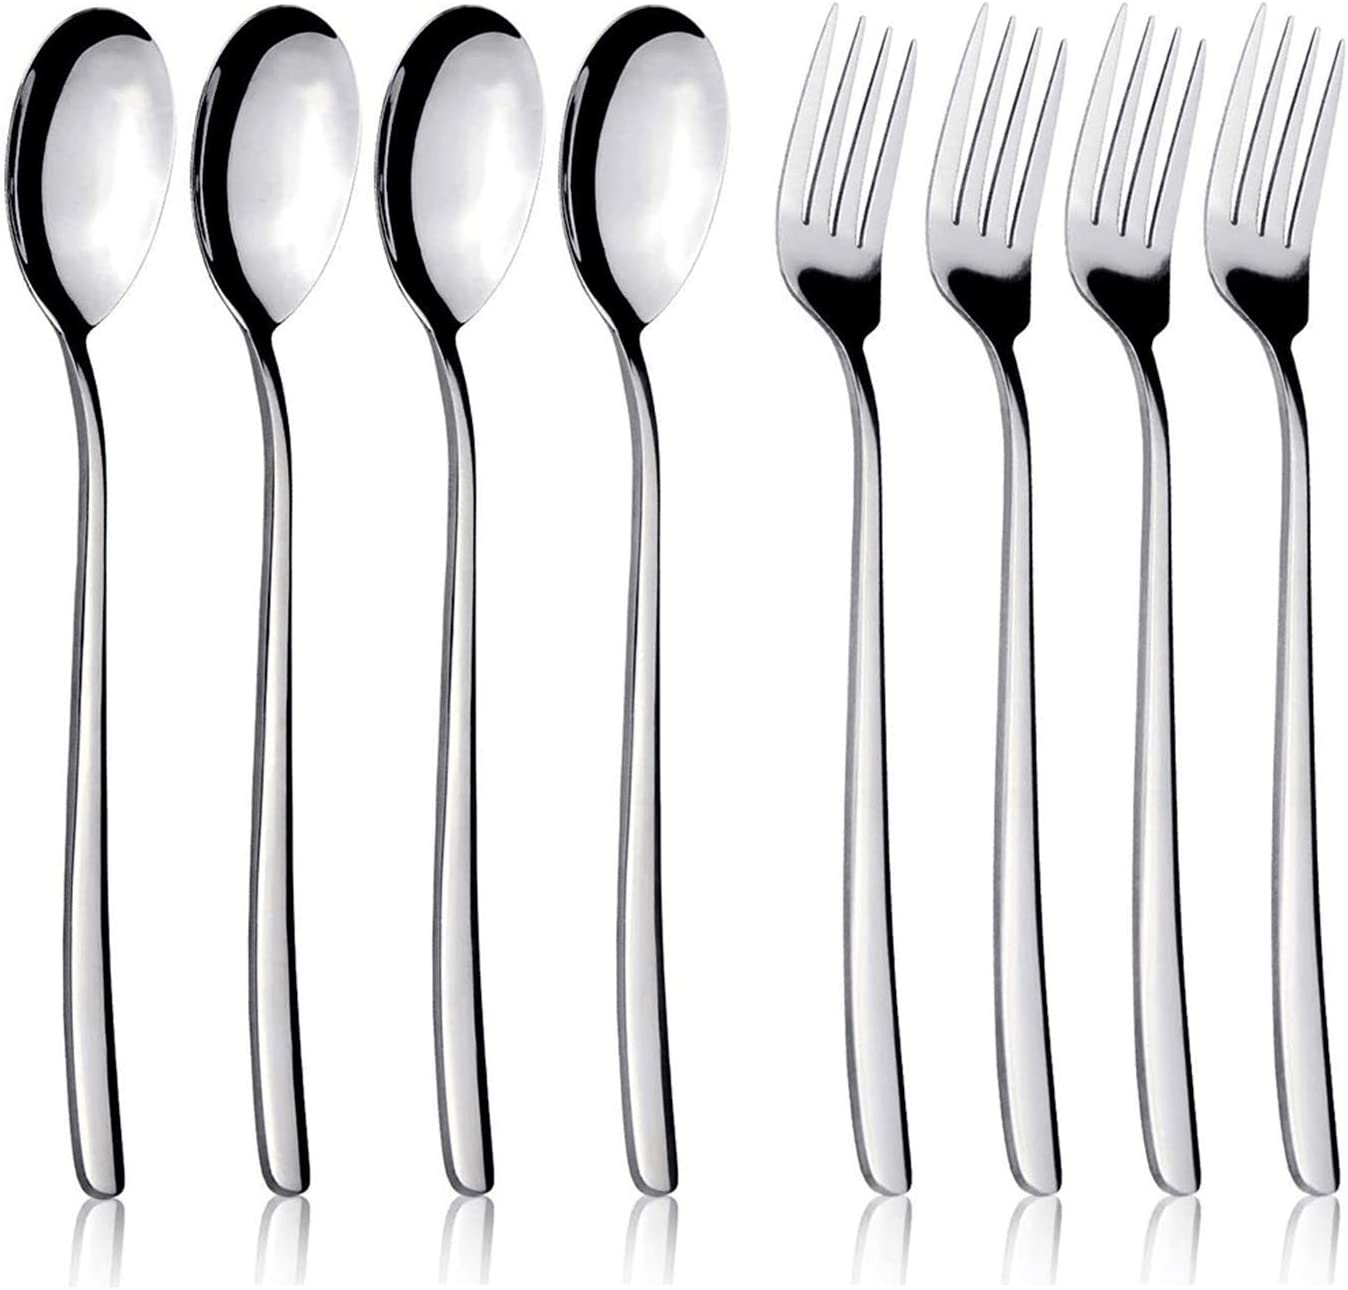 8 Pieces Stainless Fixed price for sale Steel 4 Forks Challenge the lowest price of Japan and Spoons Inch ï¼